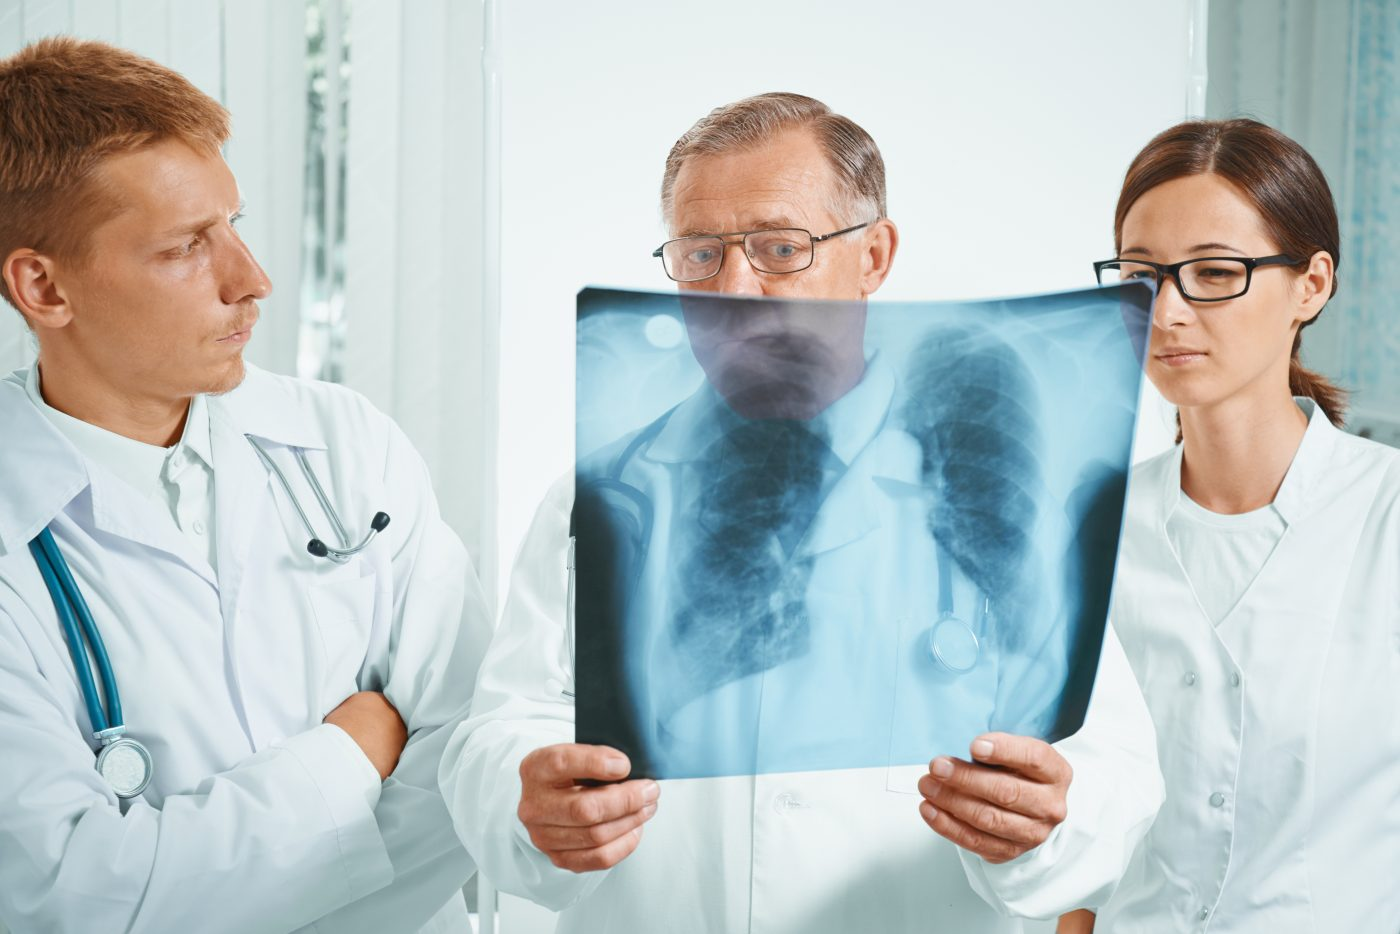 Interstitial Lung Disease Associated with Greater Risk of Lung Cancer in Scleroderma, Study Reports